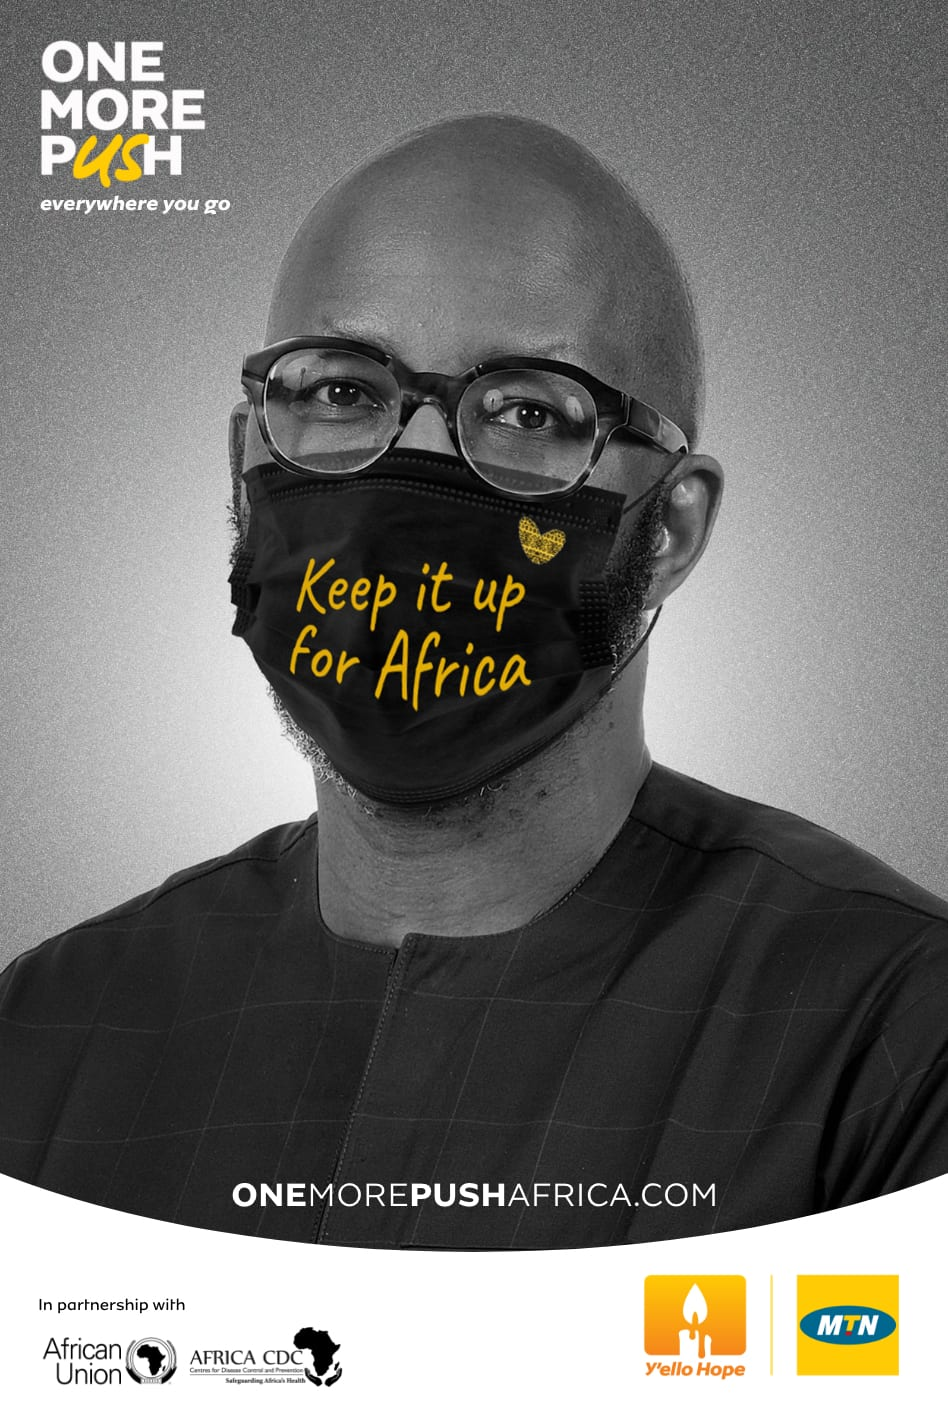 """Africa CDC and MTN accelerate fight against COVID-19 with """"One More Push"""" campaign"""